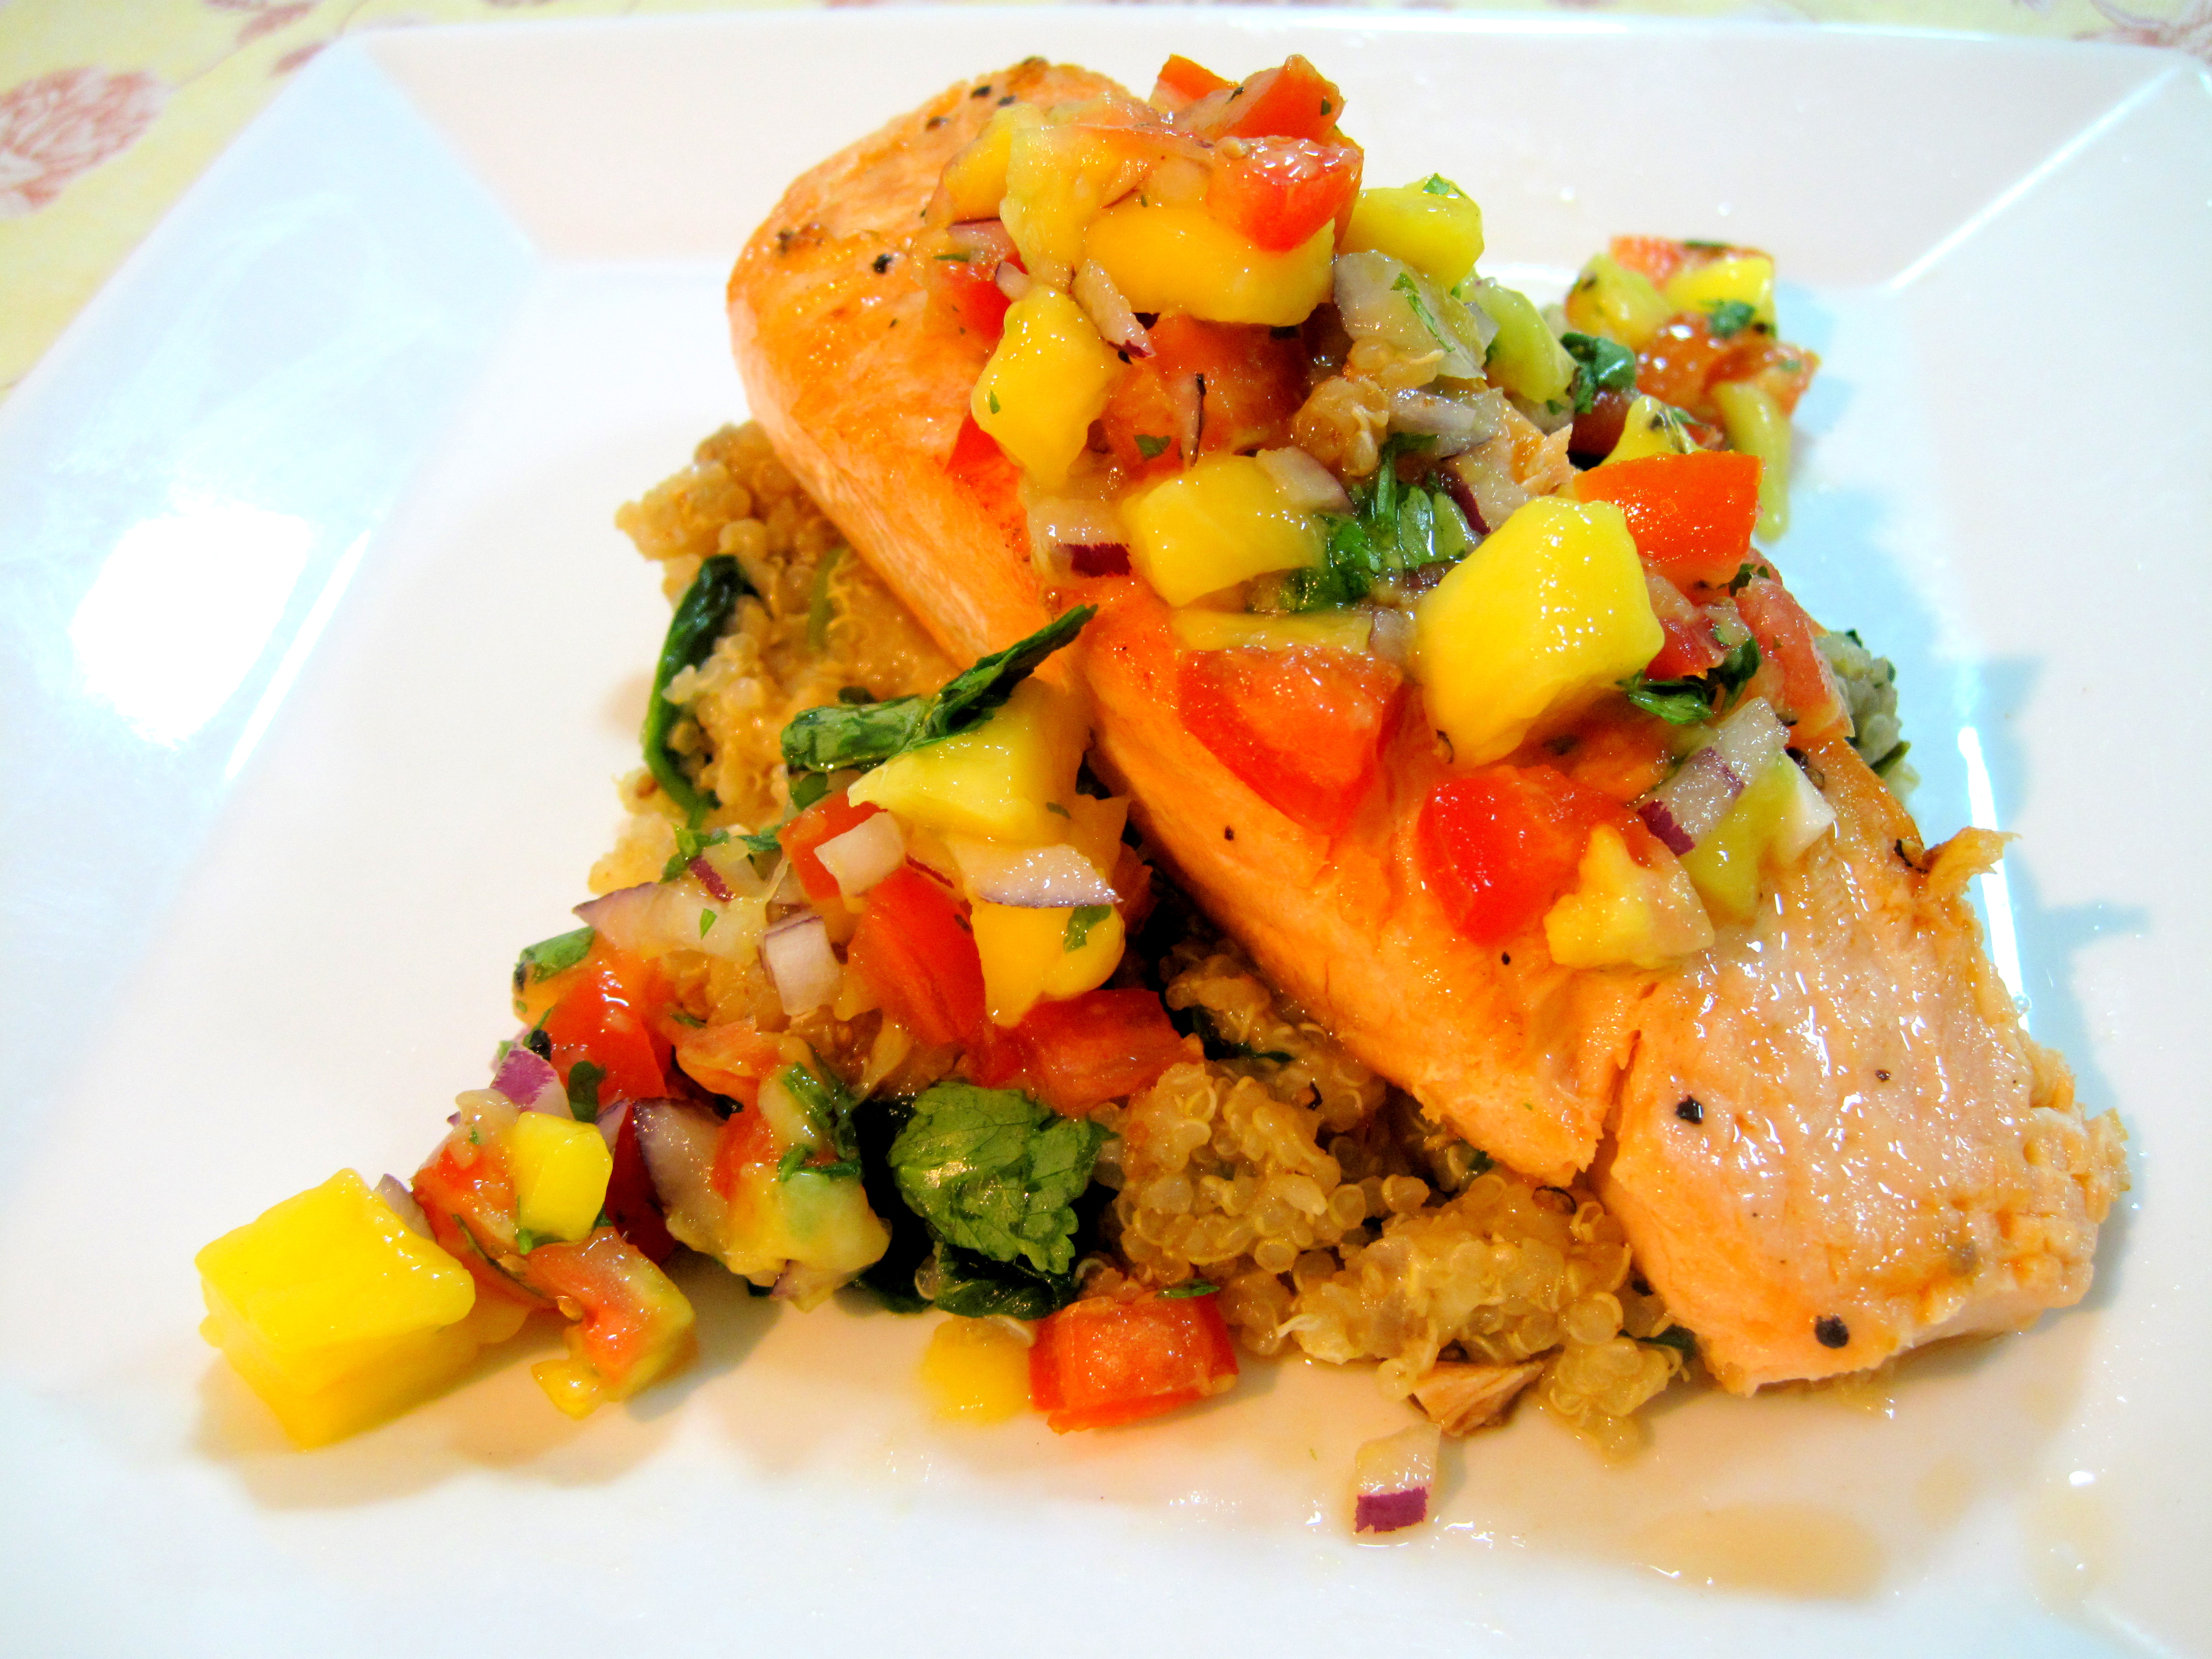 Pan Fried Salmon, Spinach Quinoa, and Mango Salsa | Kelly Siew Cooks